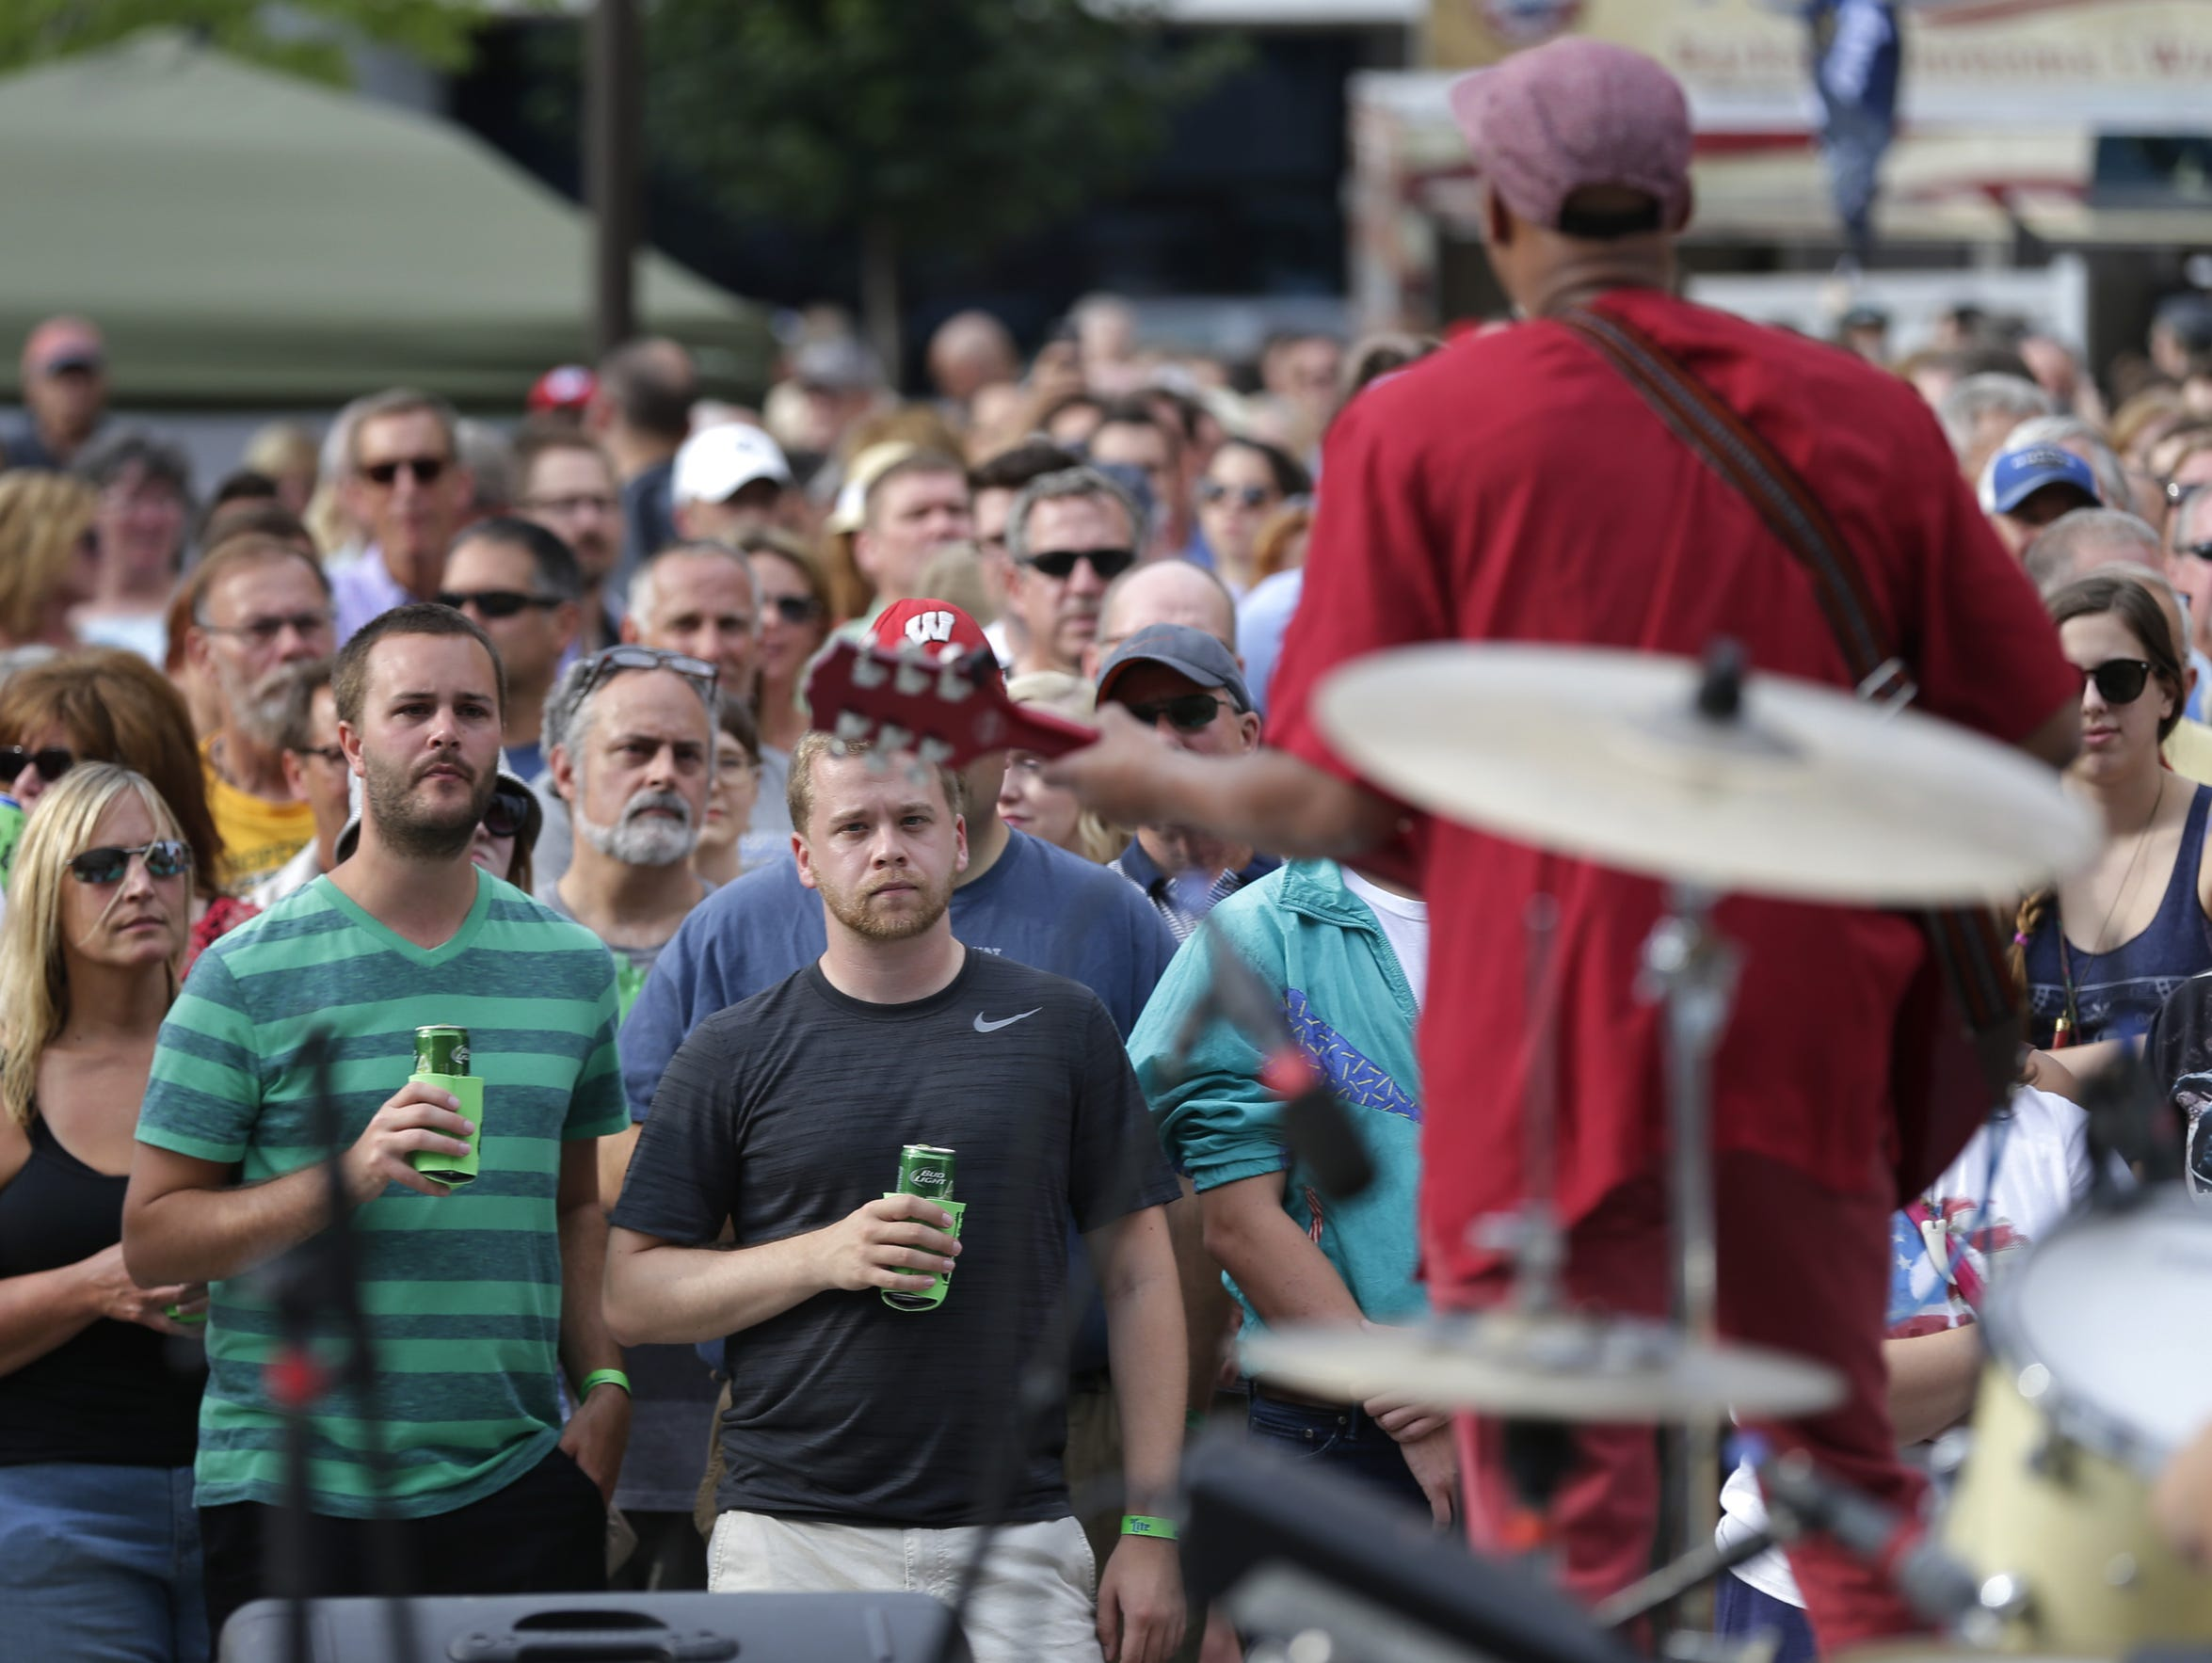 Music fans take in a show at Houdini Plaza in August